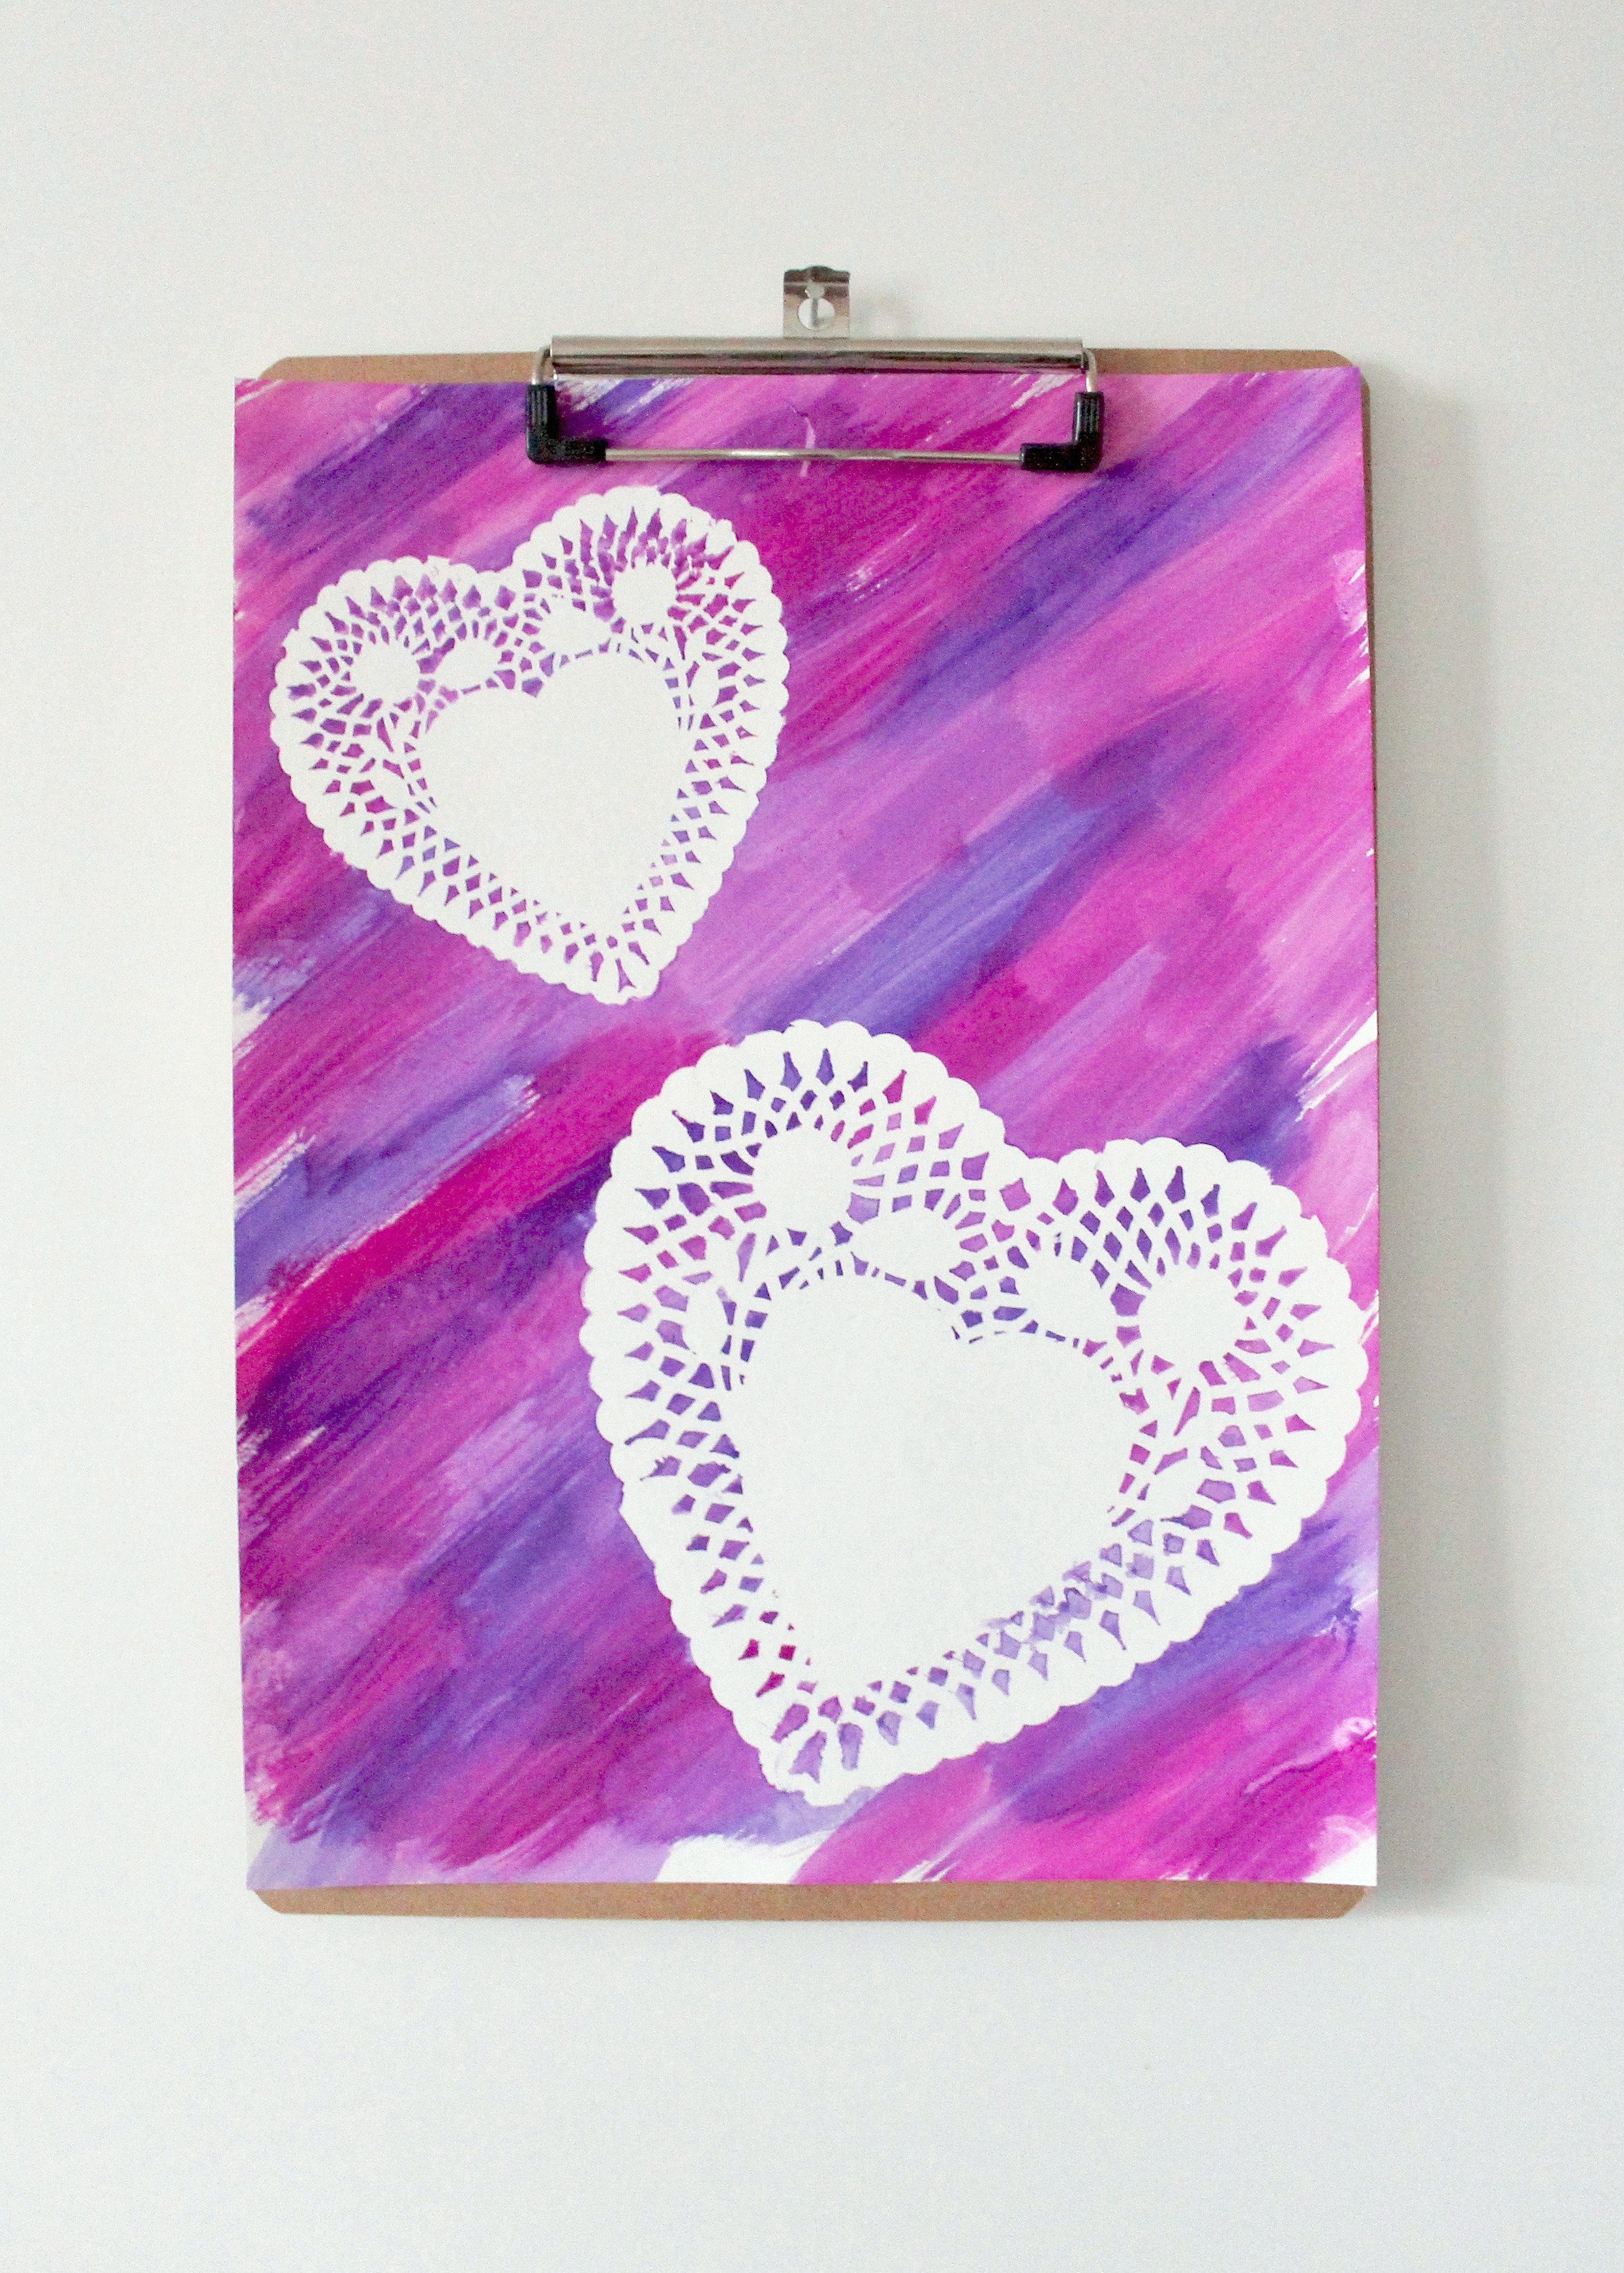 DIY Heart Crafts | Valentines Day Activities for Kids | Valentines Day Crafts | Mix Media Art for Kids | Children's Arts and Crafts | Toddler Art Activity | Activities with Doily